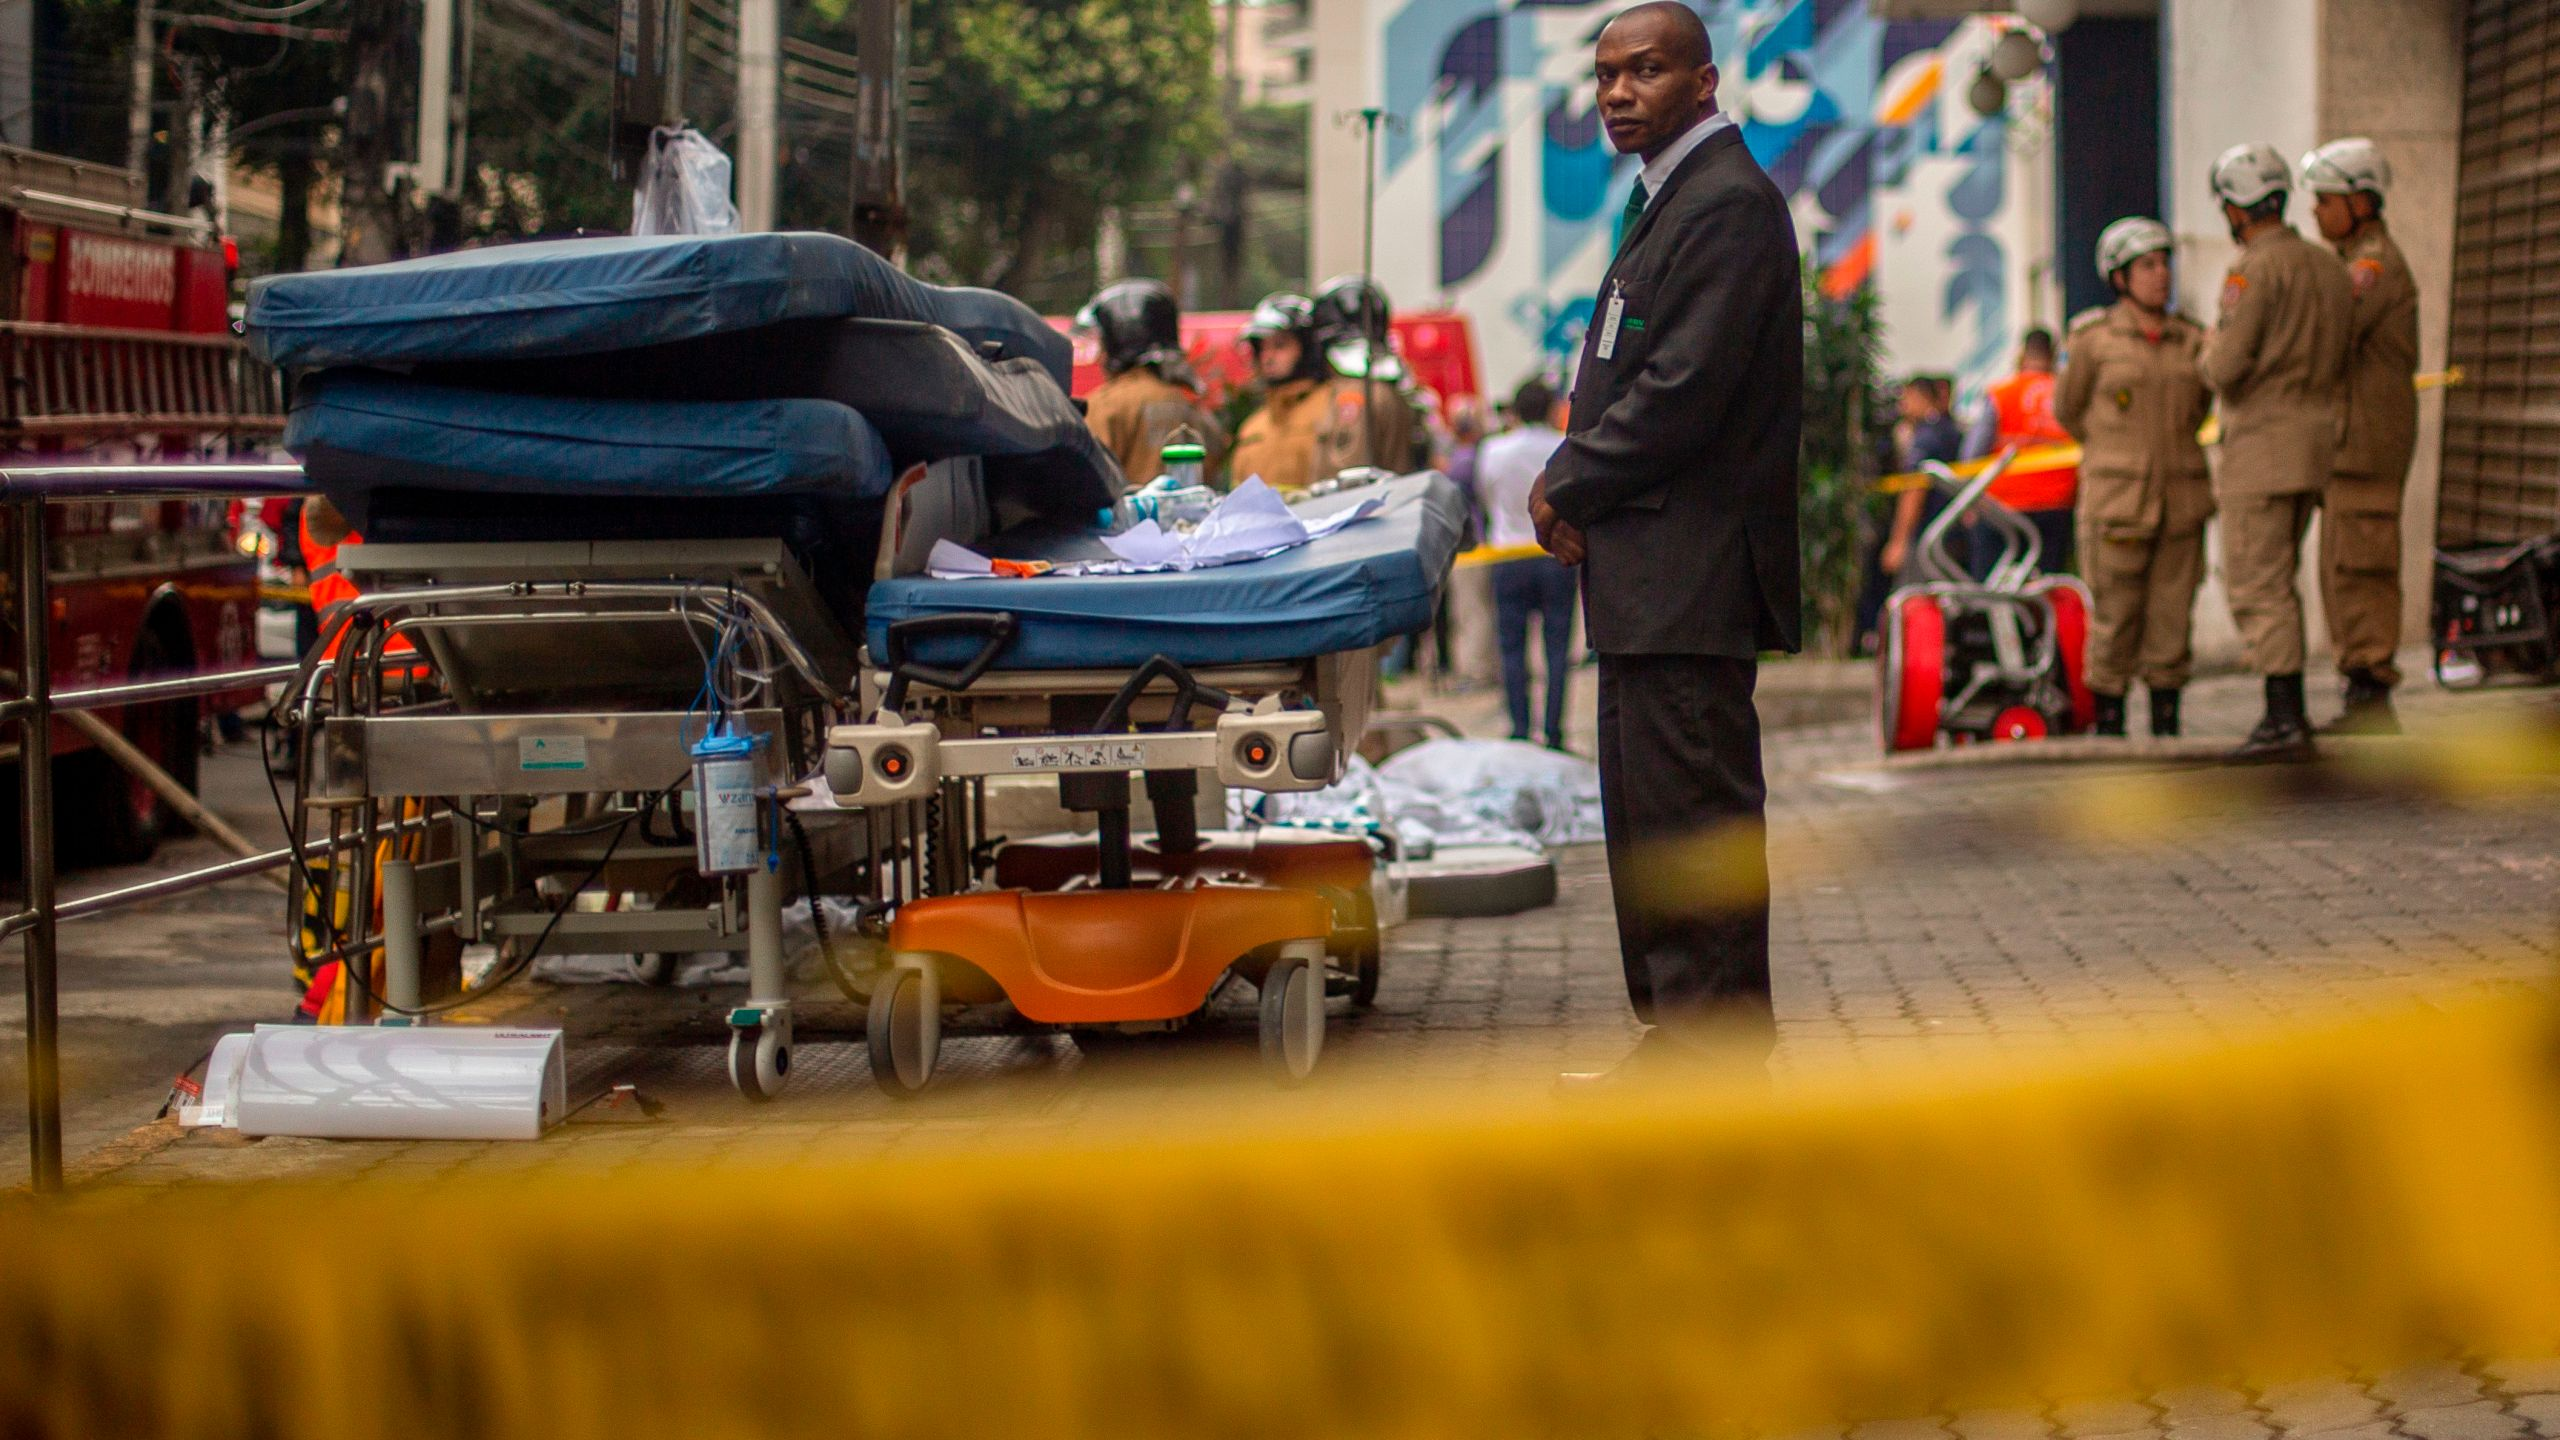 A security officer looks after medical equipment left outside Badim Hospital following a fire at the medical facility in the Tijuca neighborhood, Rio de Janeiro, Brazil, on Sept. 13, 2019. (Credit: MAURO PIMENTEL/AFP/Getty Images)